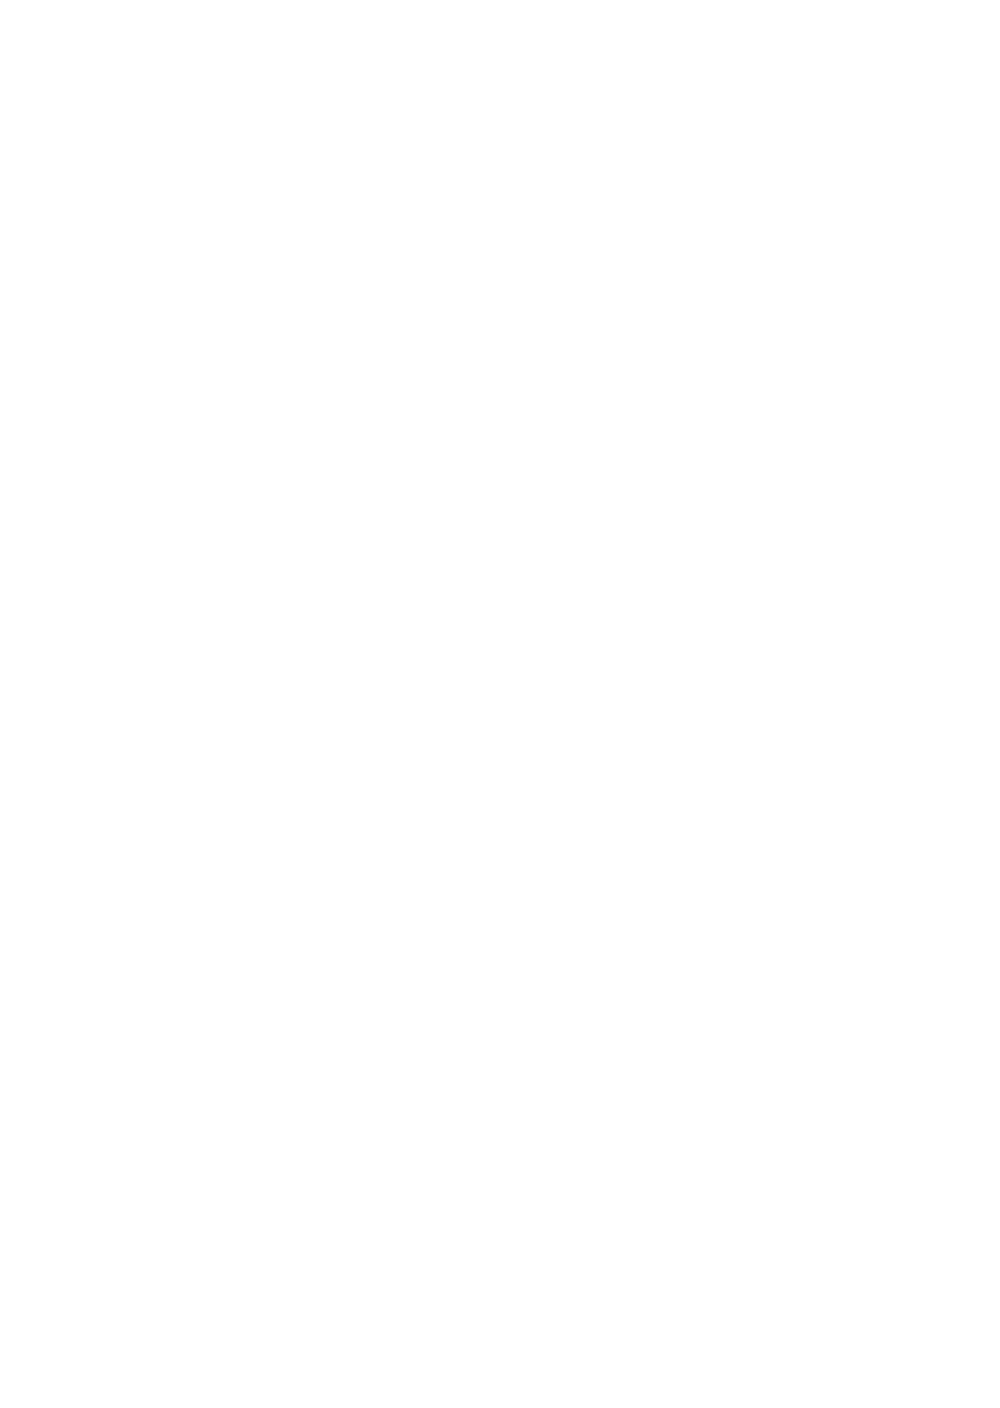 hearing aid fitting_circle icon white outline_with text-01.png